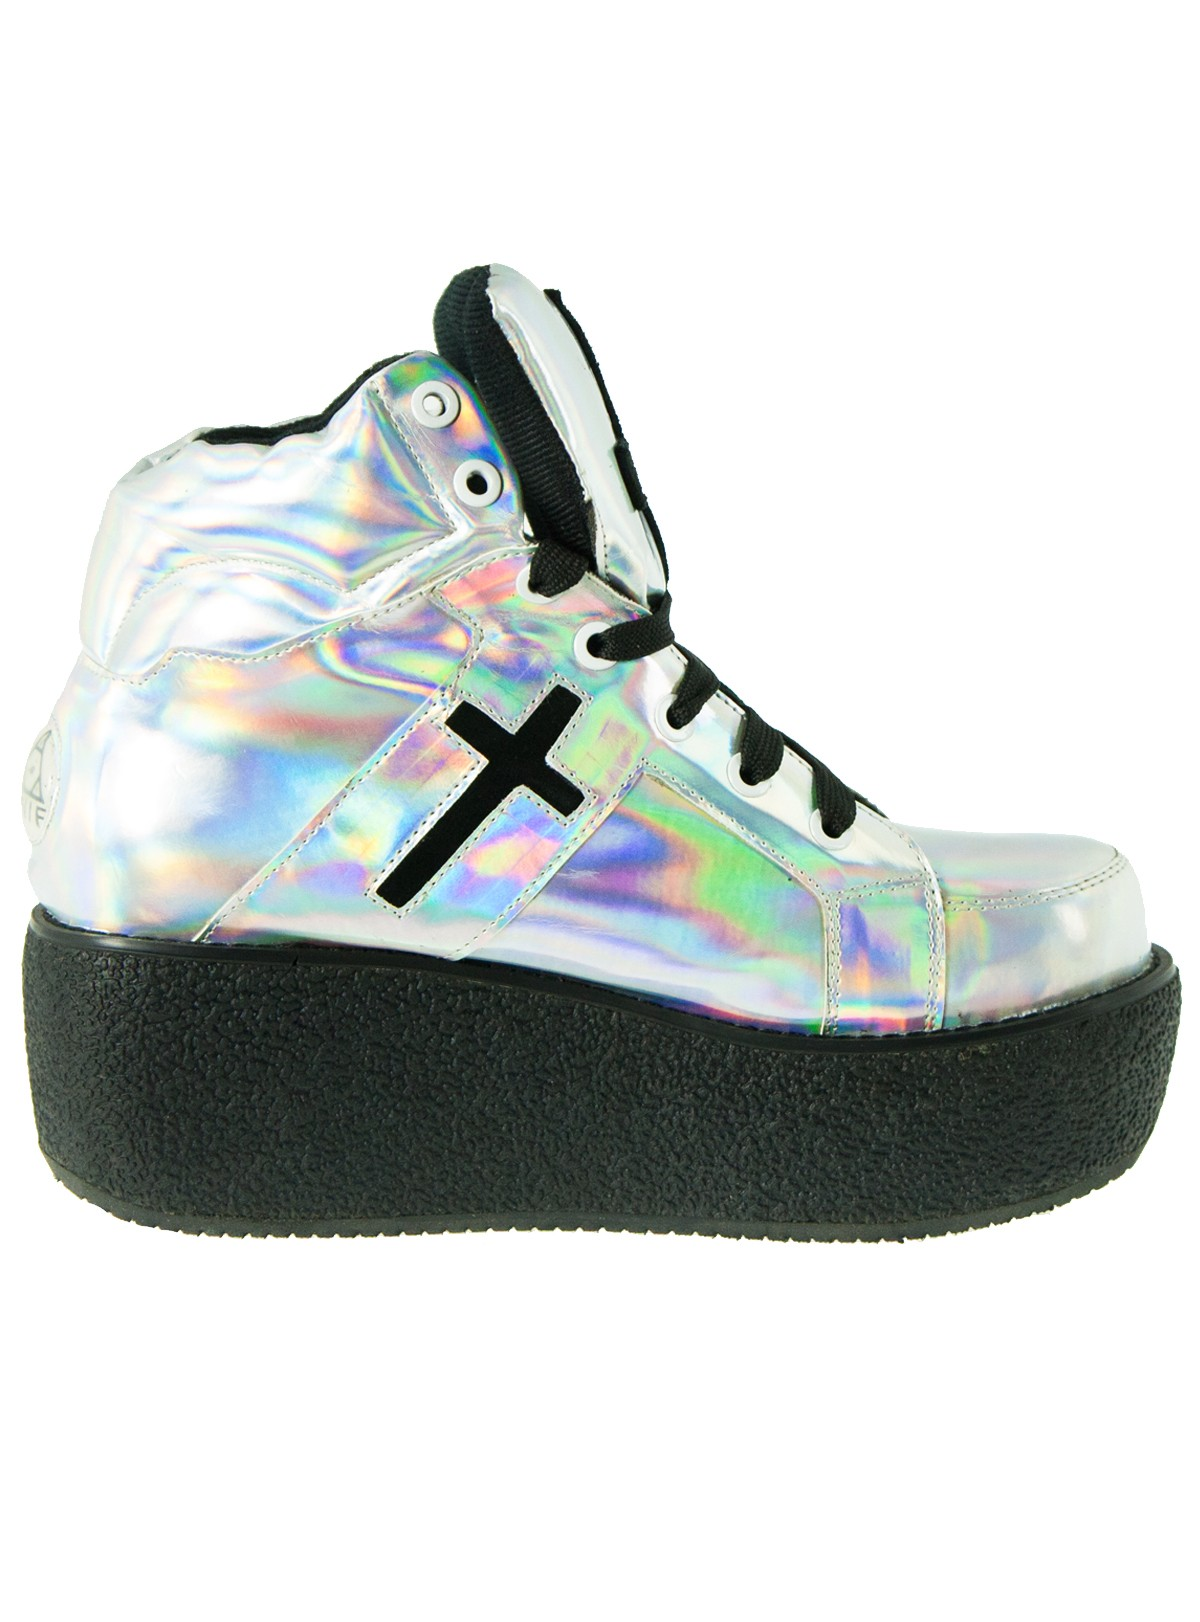 CROSS TRAINER HOLOGRAM - Shoes - WOMENS